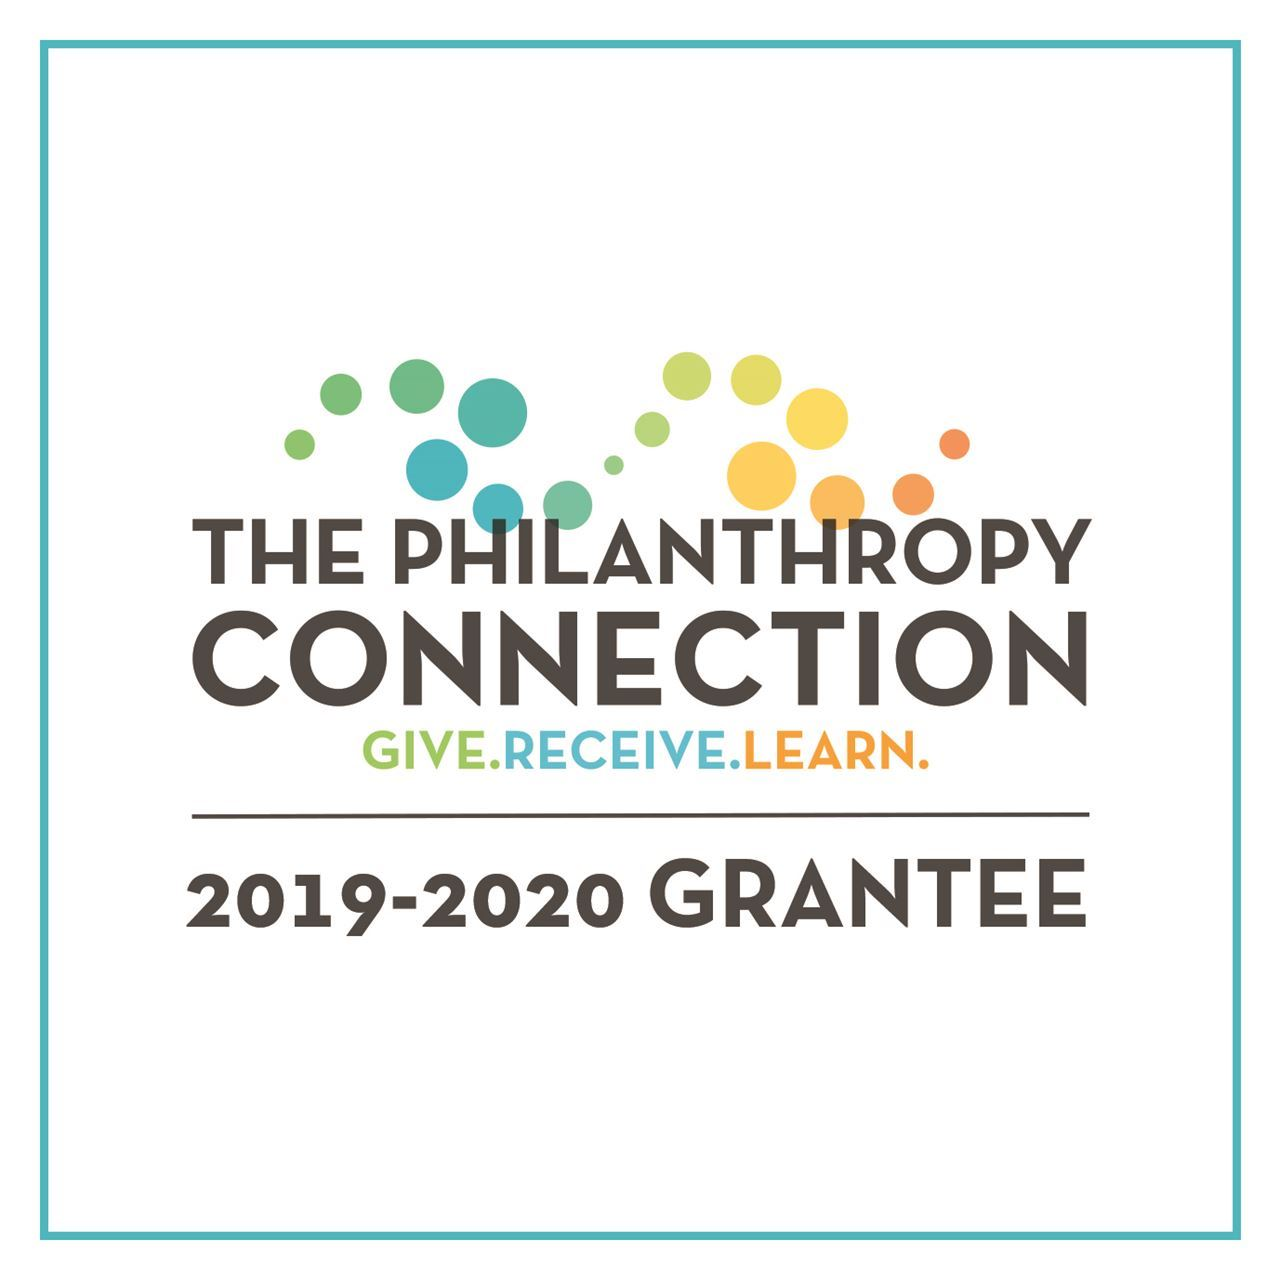 tpc-badge-background-2019-2020-grantee.jpg